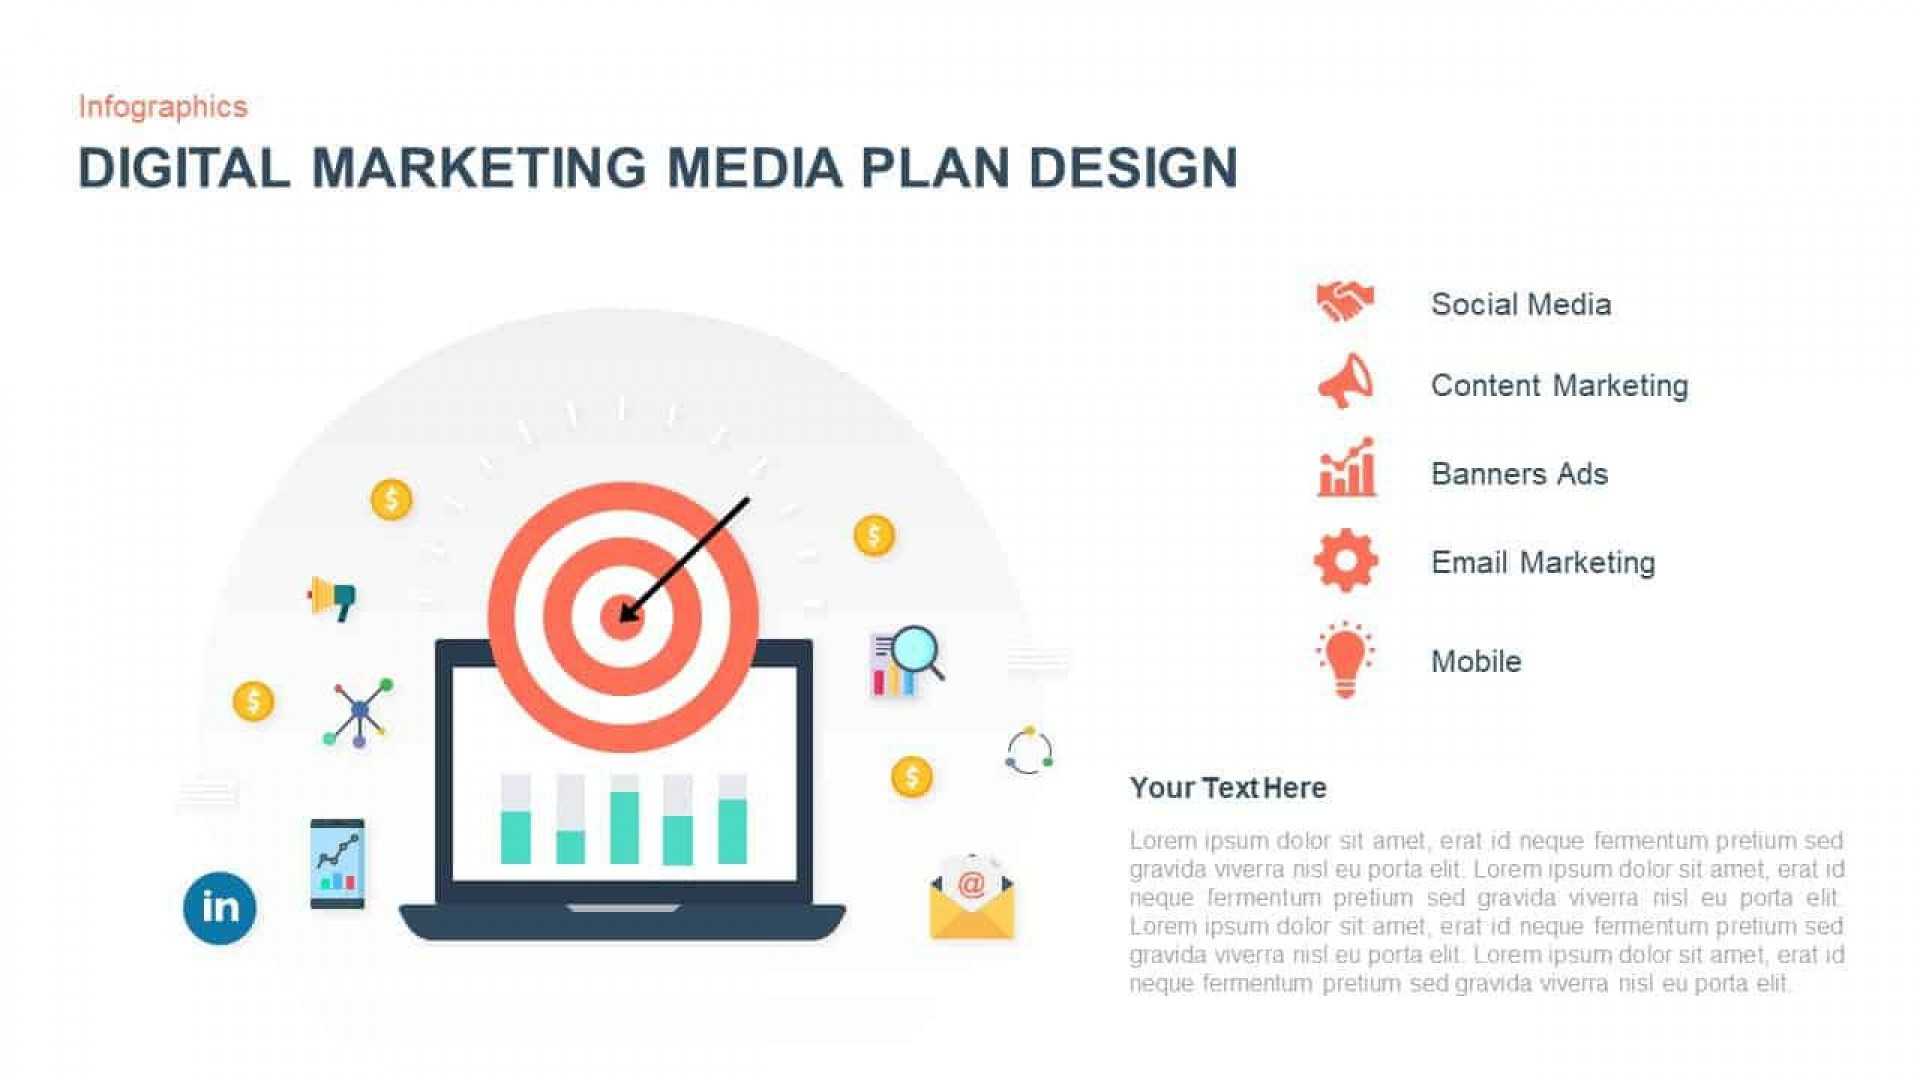 004 Wonderful Social Media Strategy Powerpoint Template High Resolution  Marketing Plan Free1920